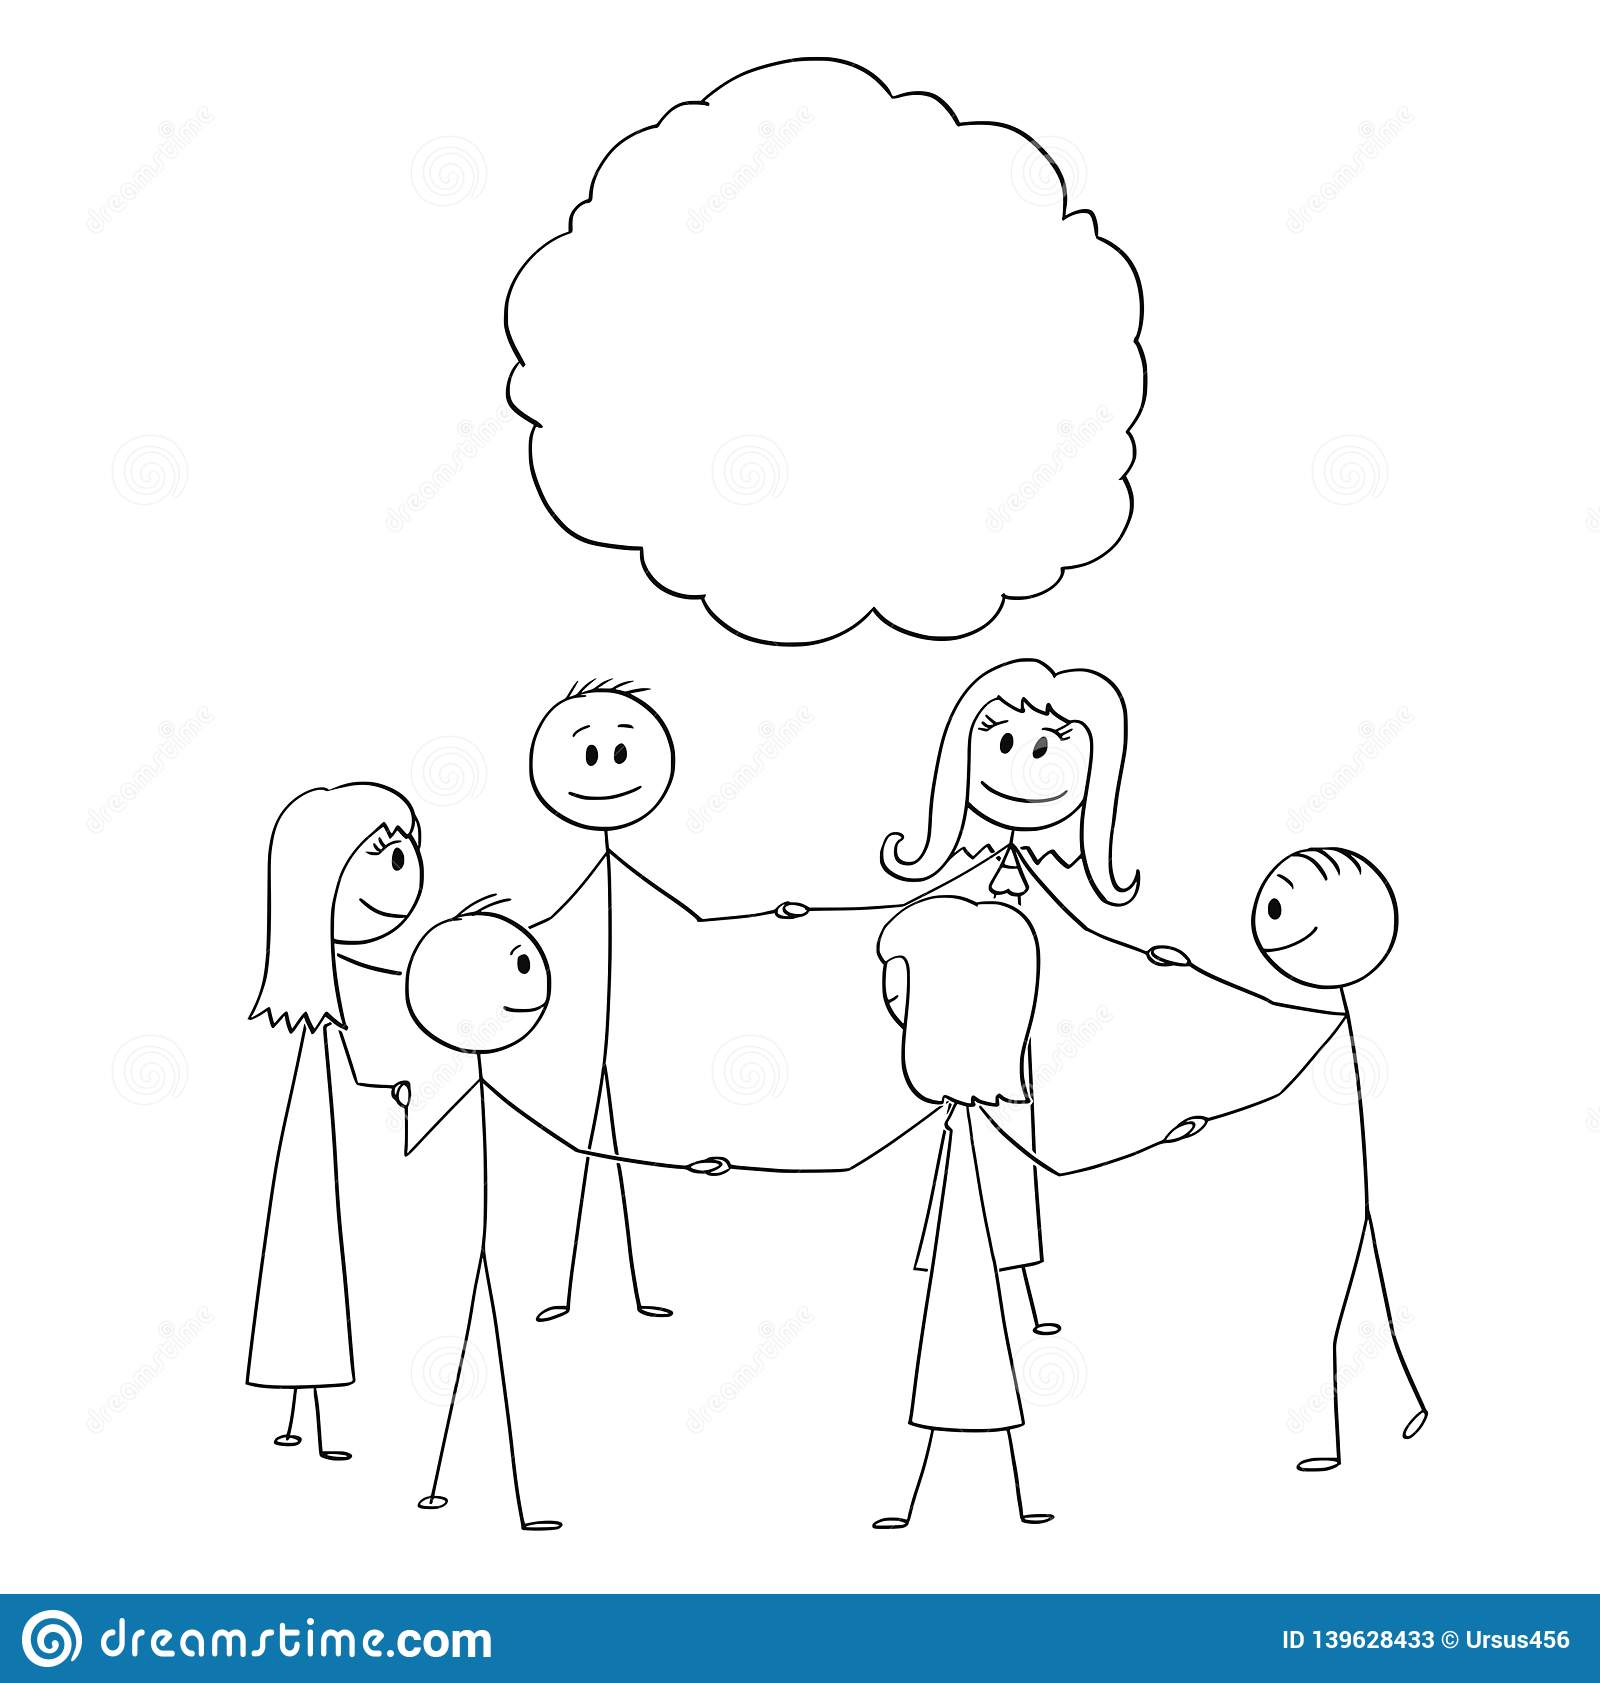 Cartoon stick figure drawing conceptual illustration of group or team of people or businessmen standing in circle and holding each other hands